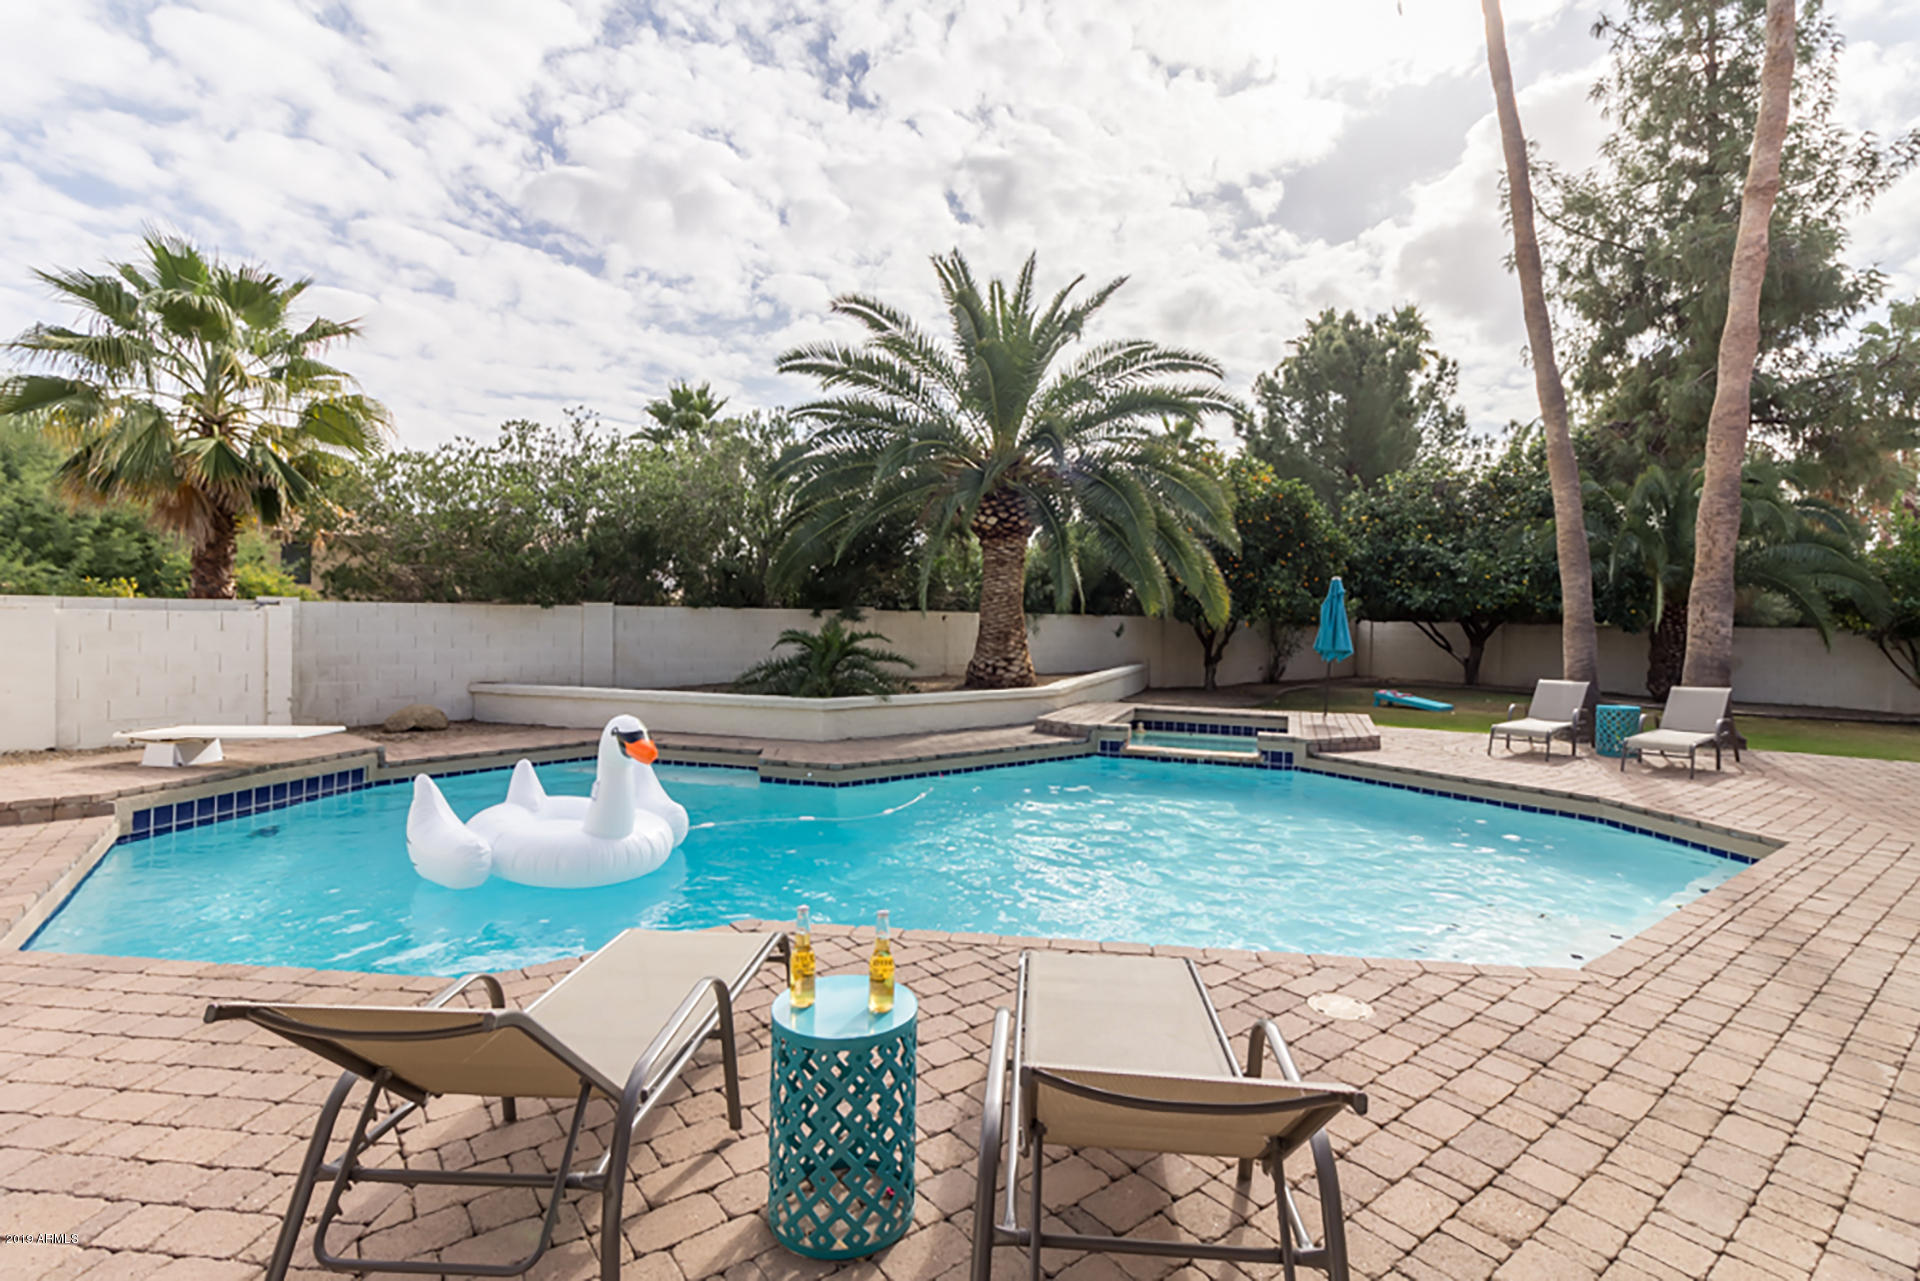 12537 76TH Place, Scottsdale, Arizona 85260, 5 Bedrooms Bedrooms, ,3.5 BathroomsBathrooms,Residential Rental,For Rent,76TH,6062526